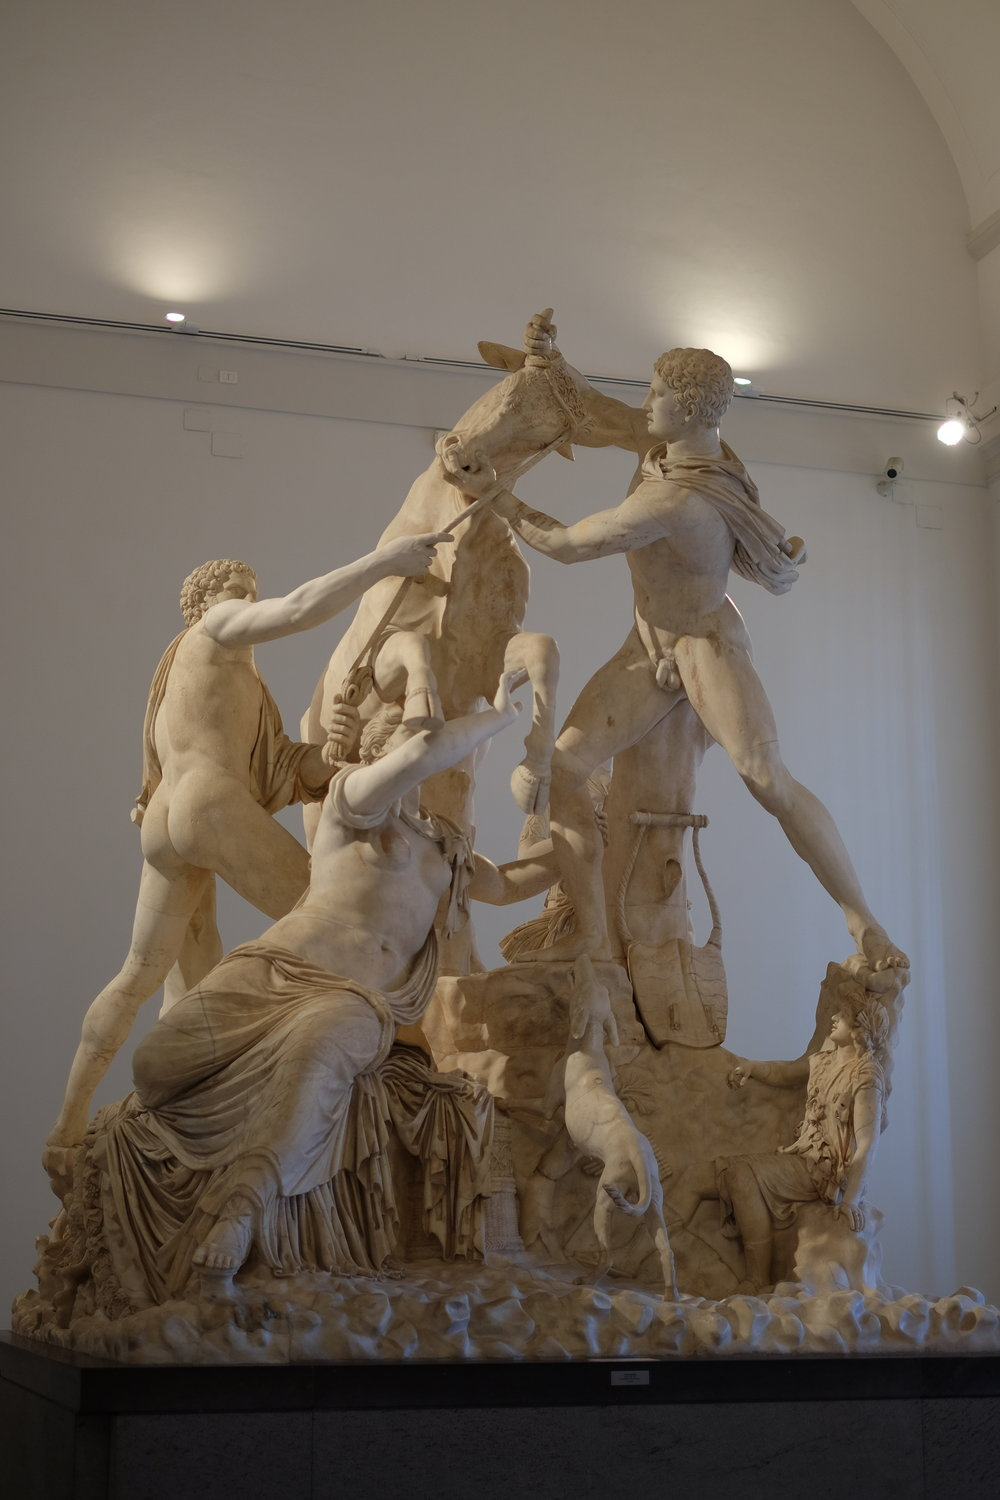 The Farnese Bull, made from a single block of marble.